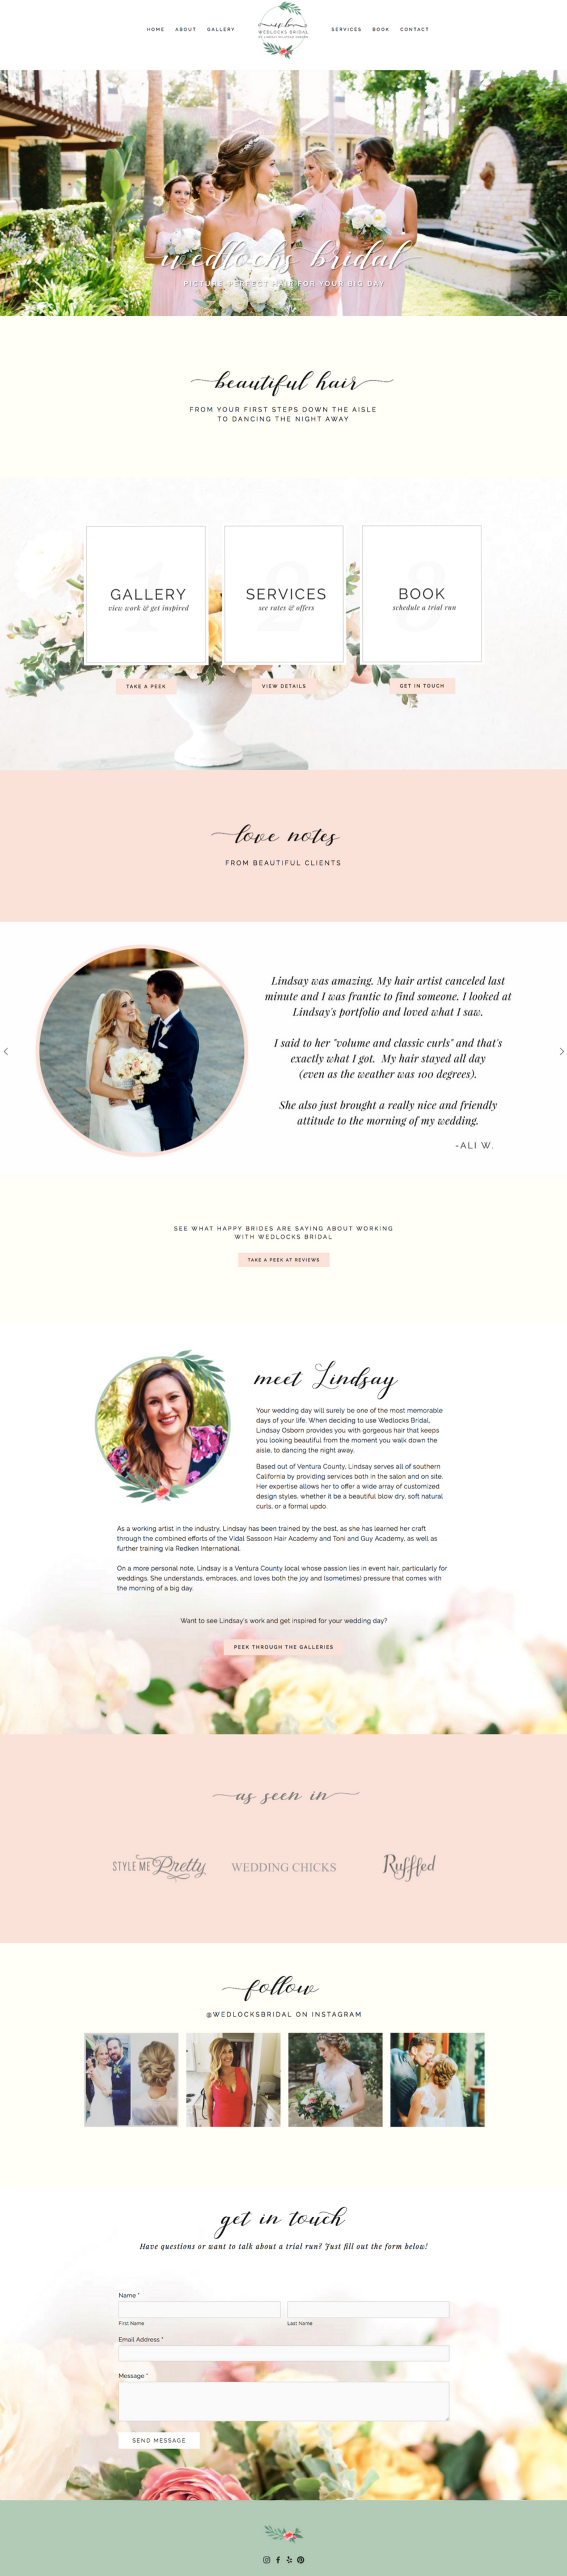 Wedlocks Bridal Homepage Full Design.png